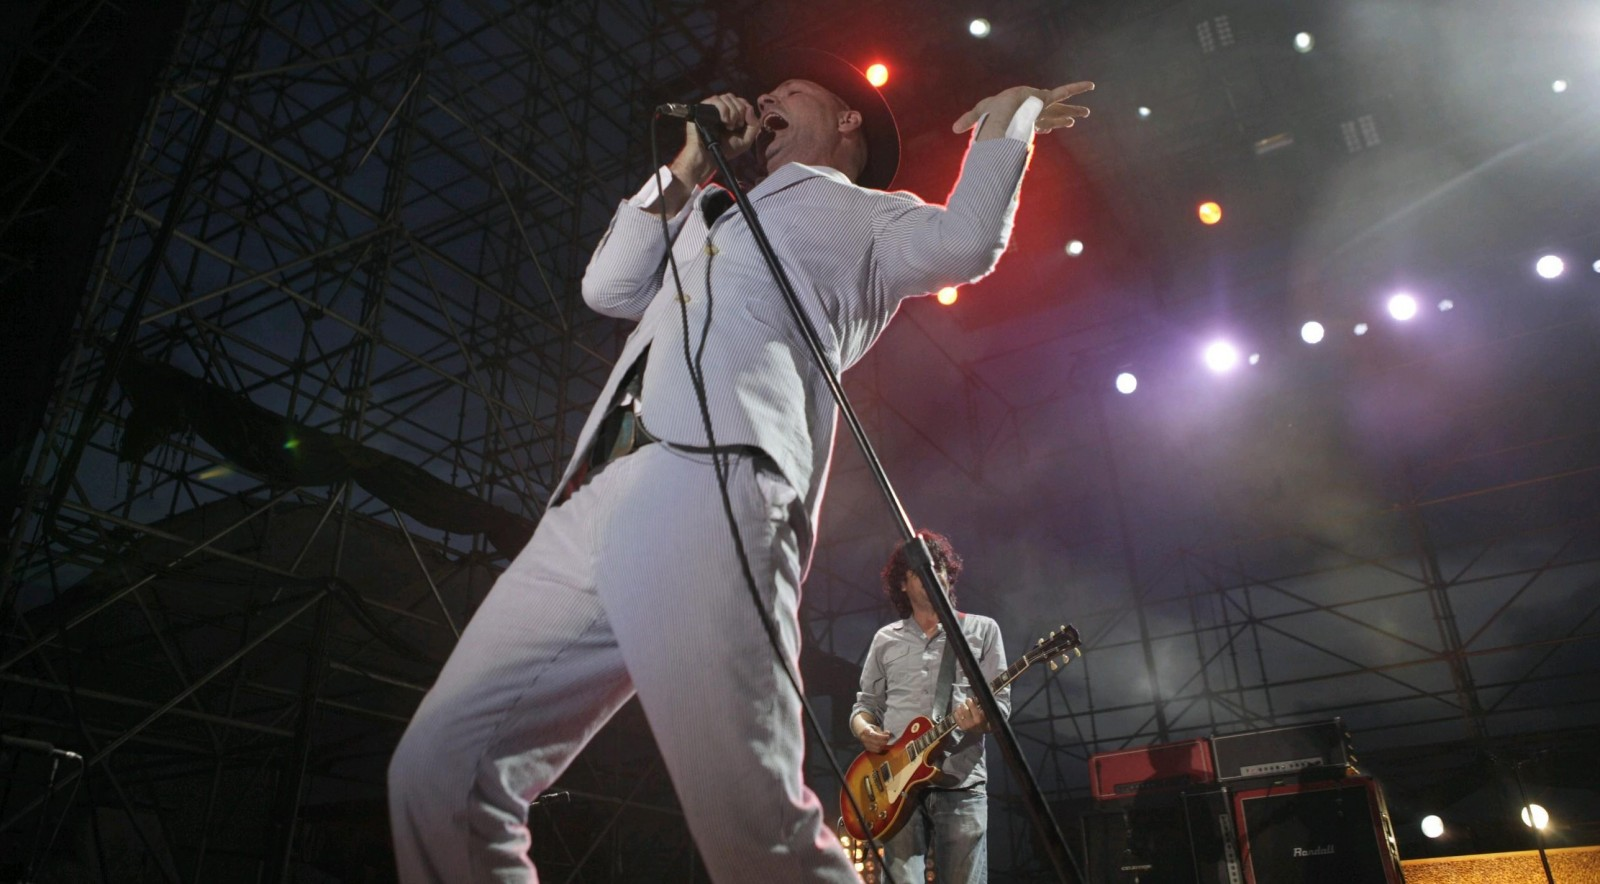 Gord Downie fronts Tragically Hip during the band's iconic Outer Harbor show in 2013. (Matthew Masin/Buffalo News file photo)